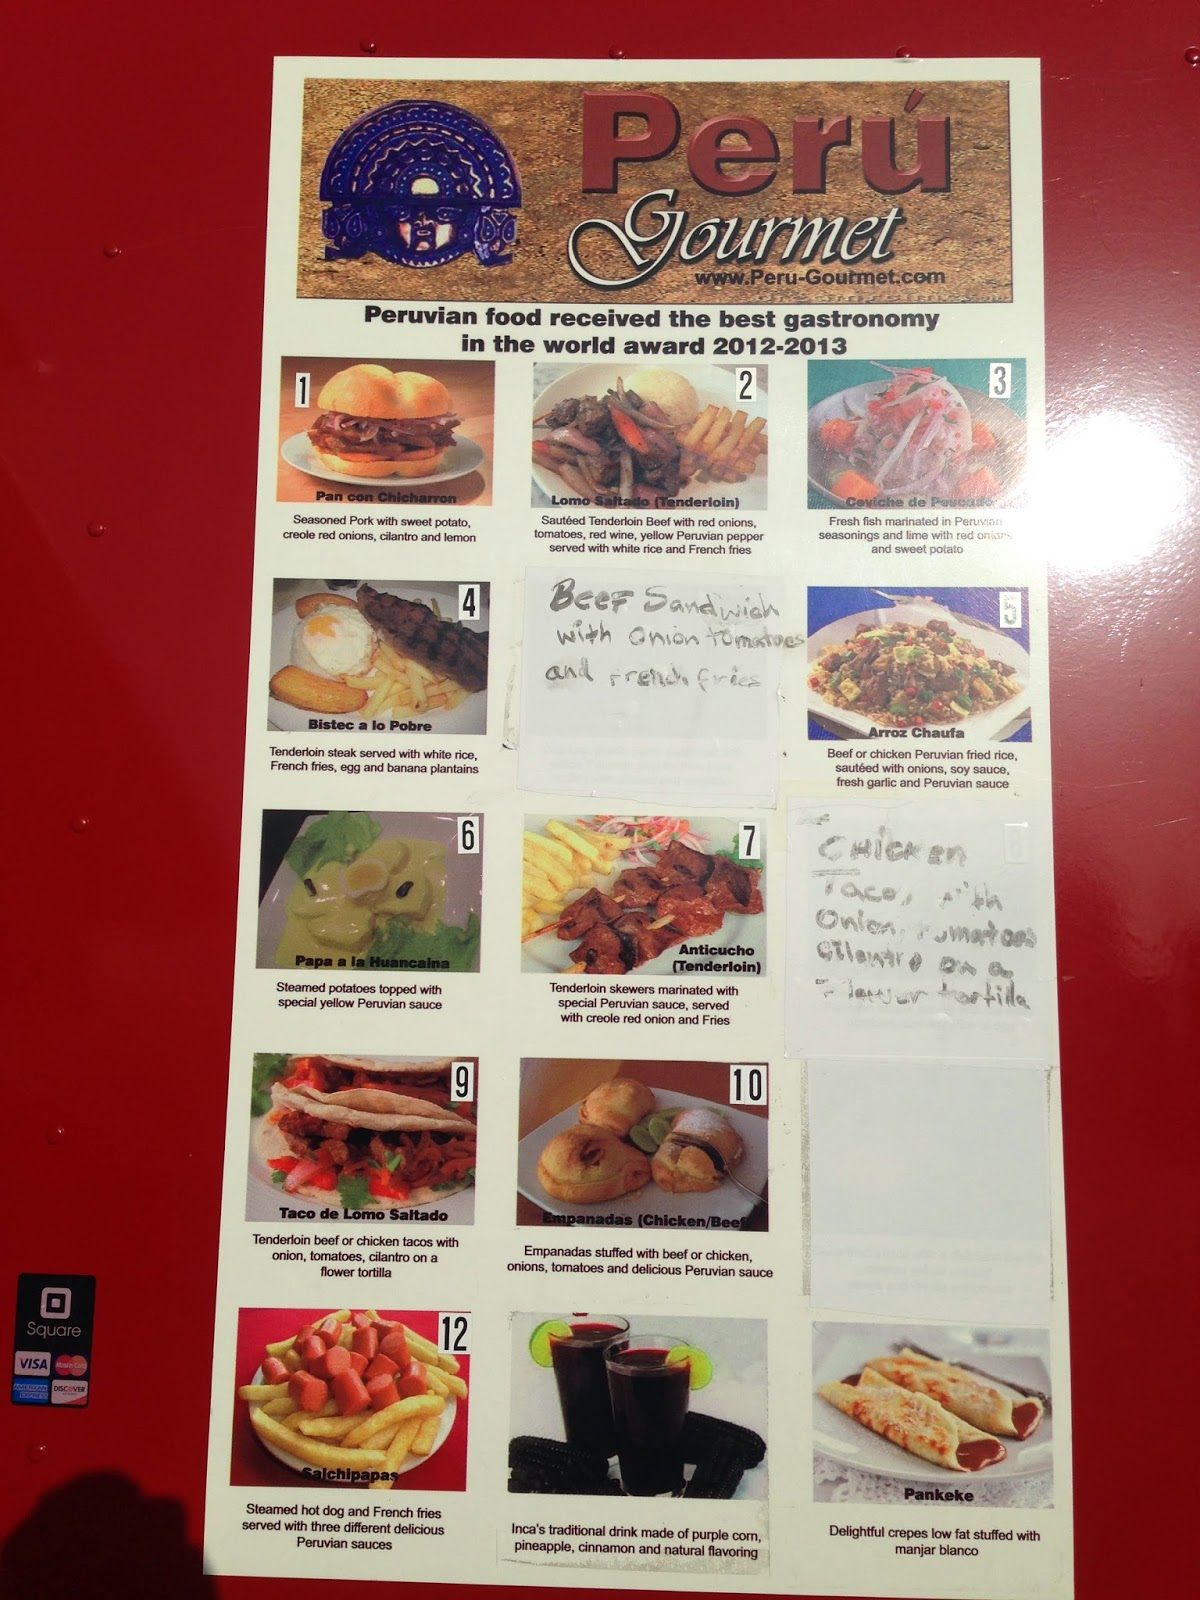 Peru Gourmet Food Truck Houston, TX Menu